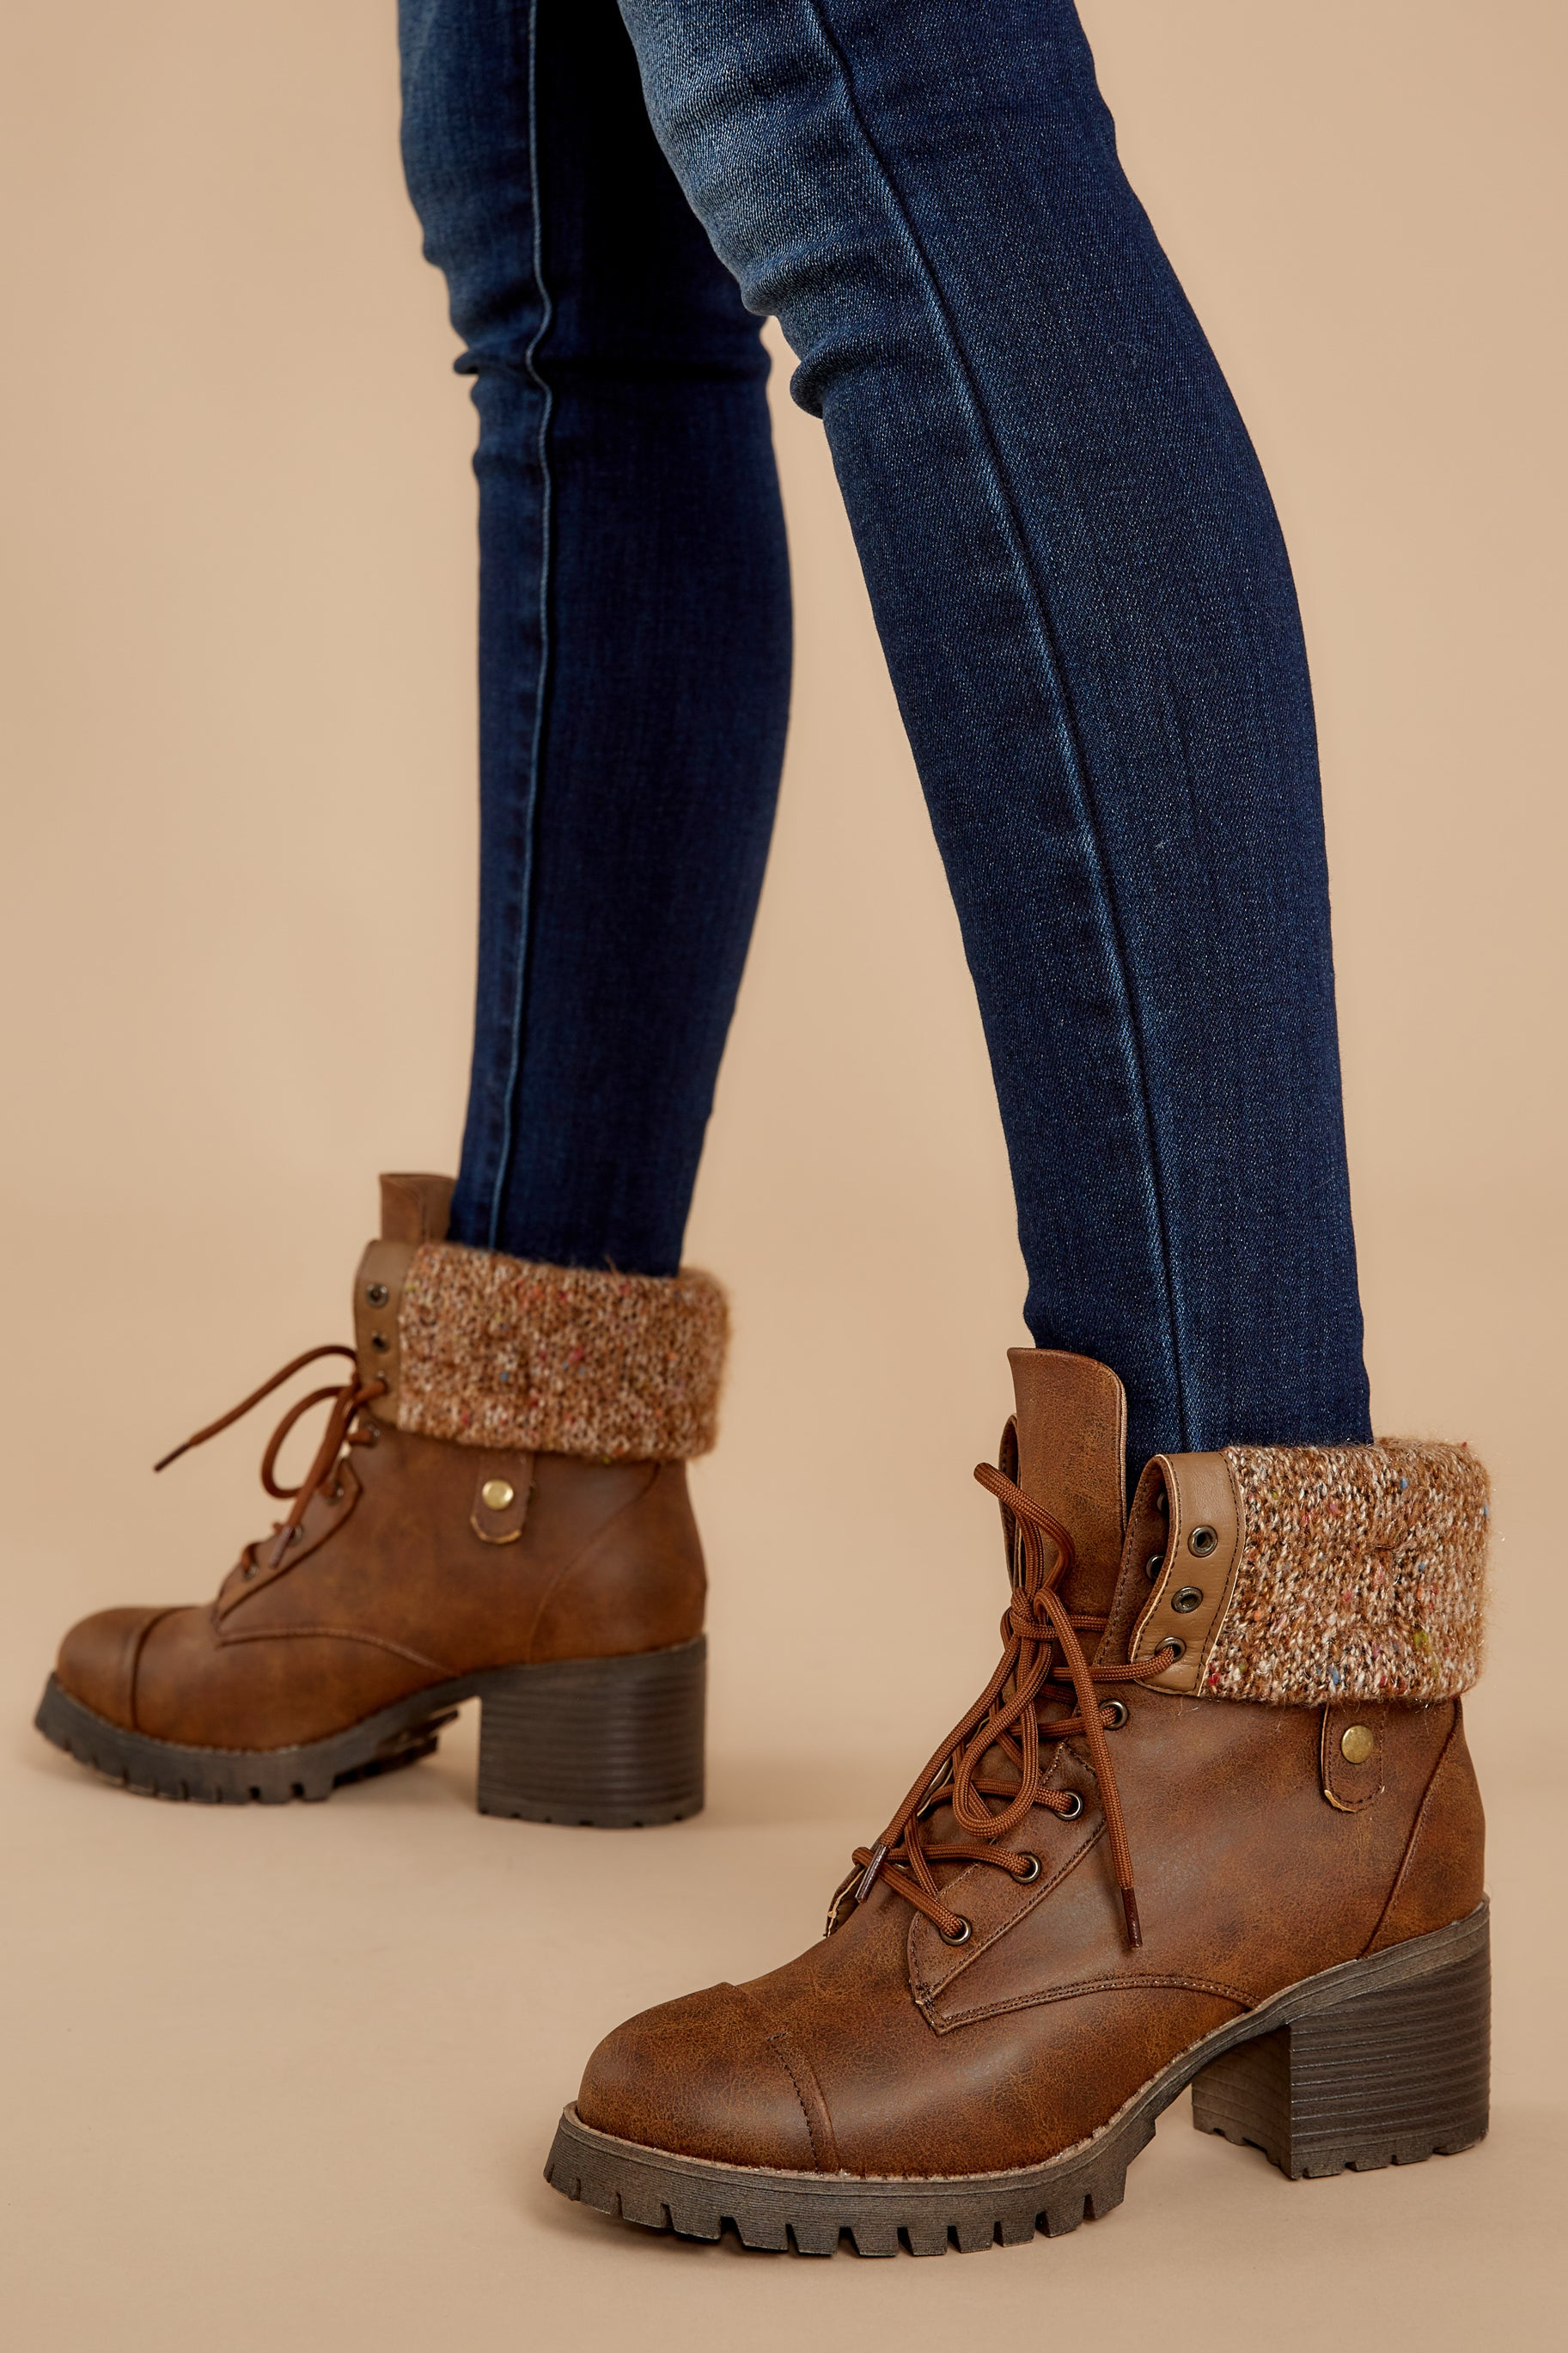 1 Somewhere Out There Brown Lace Up Boots at reddress.com